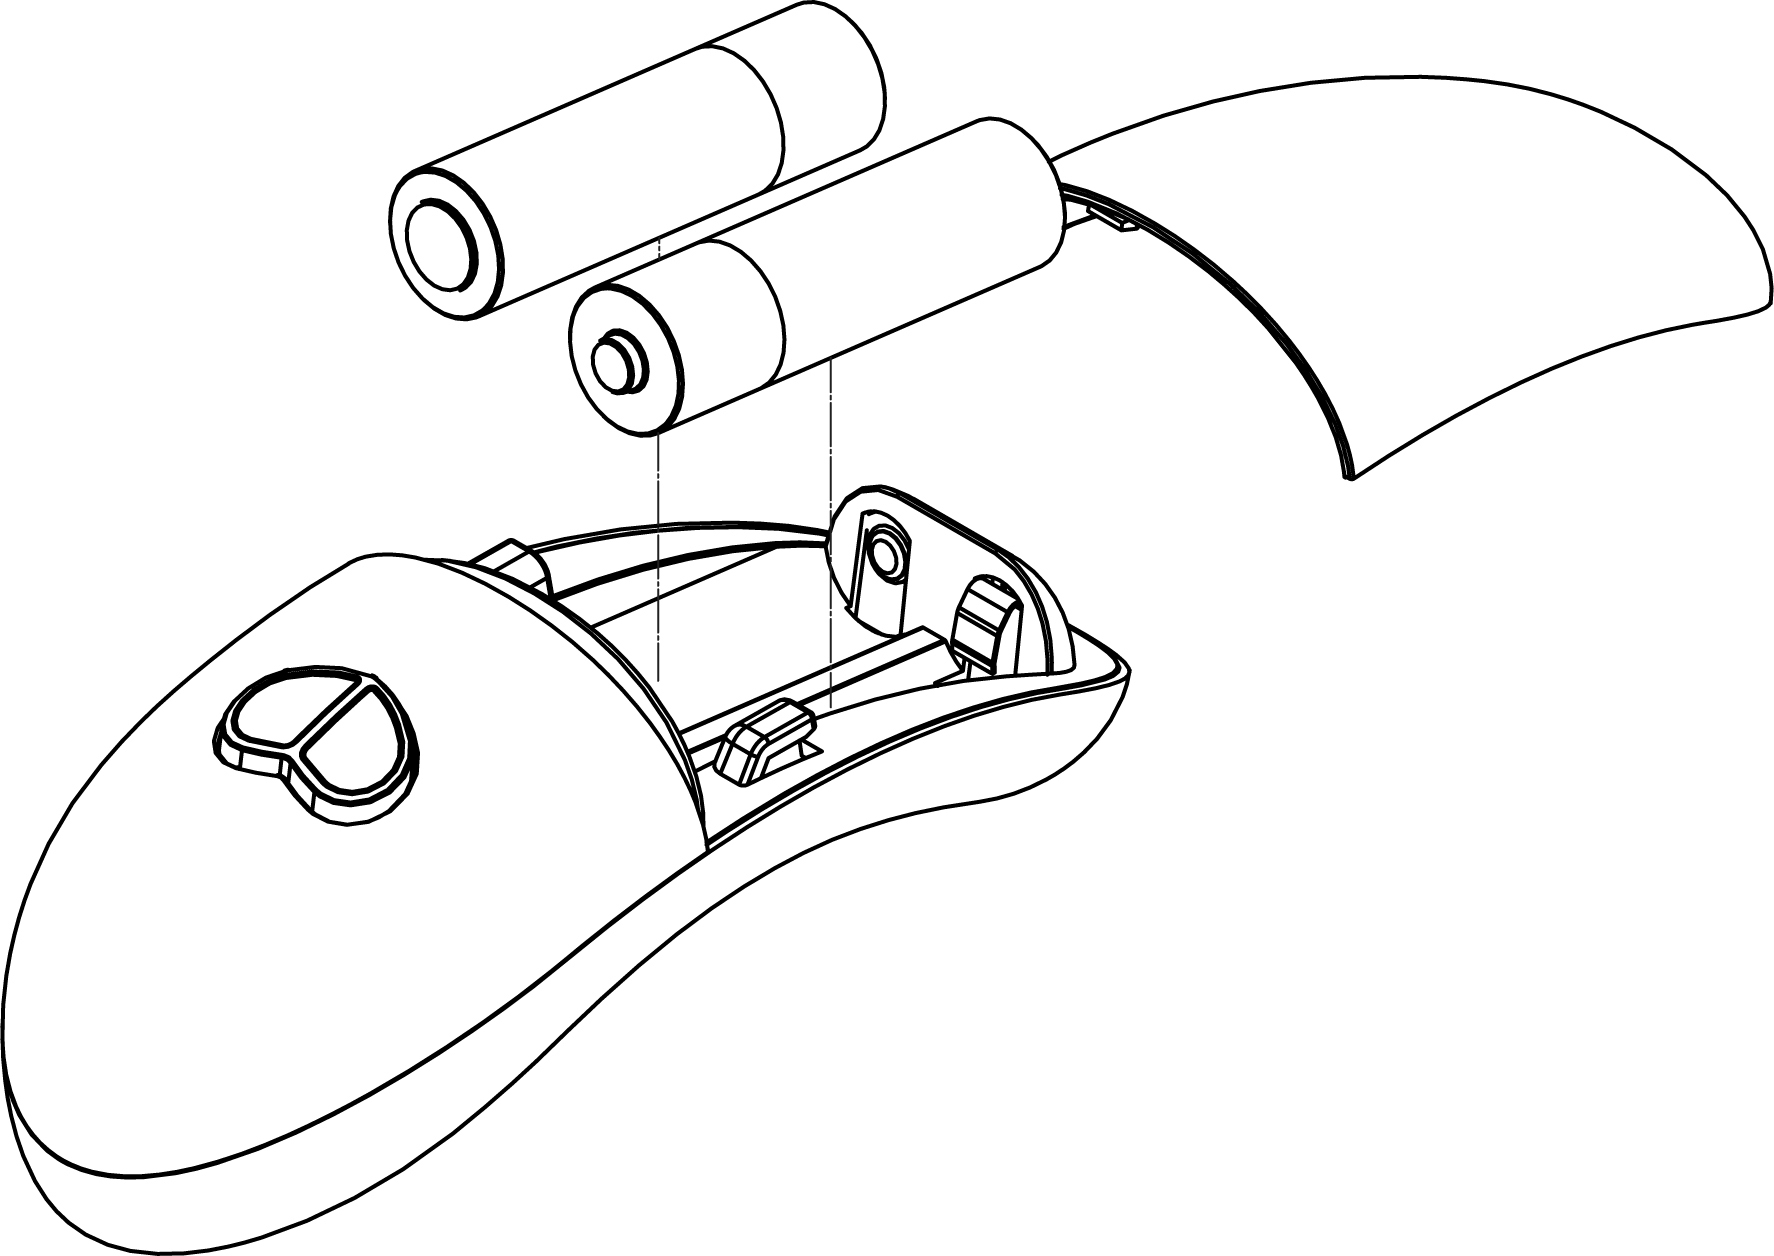 pmd-batteries-outlines-1a.jpg